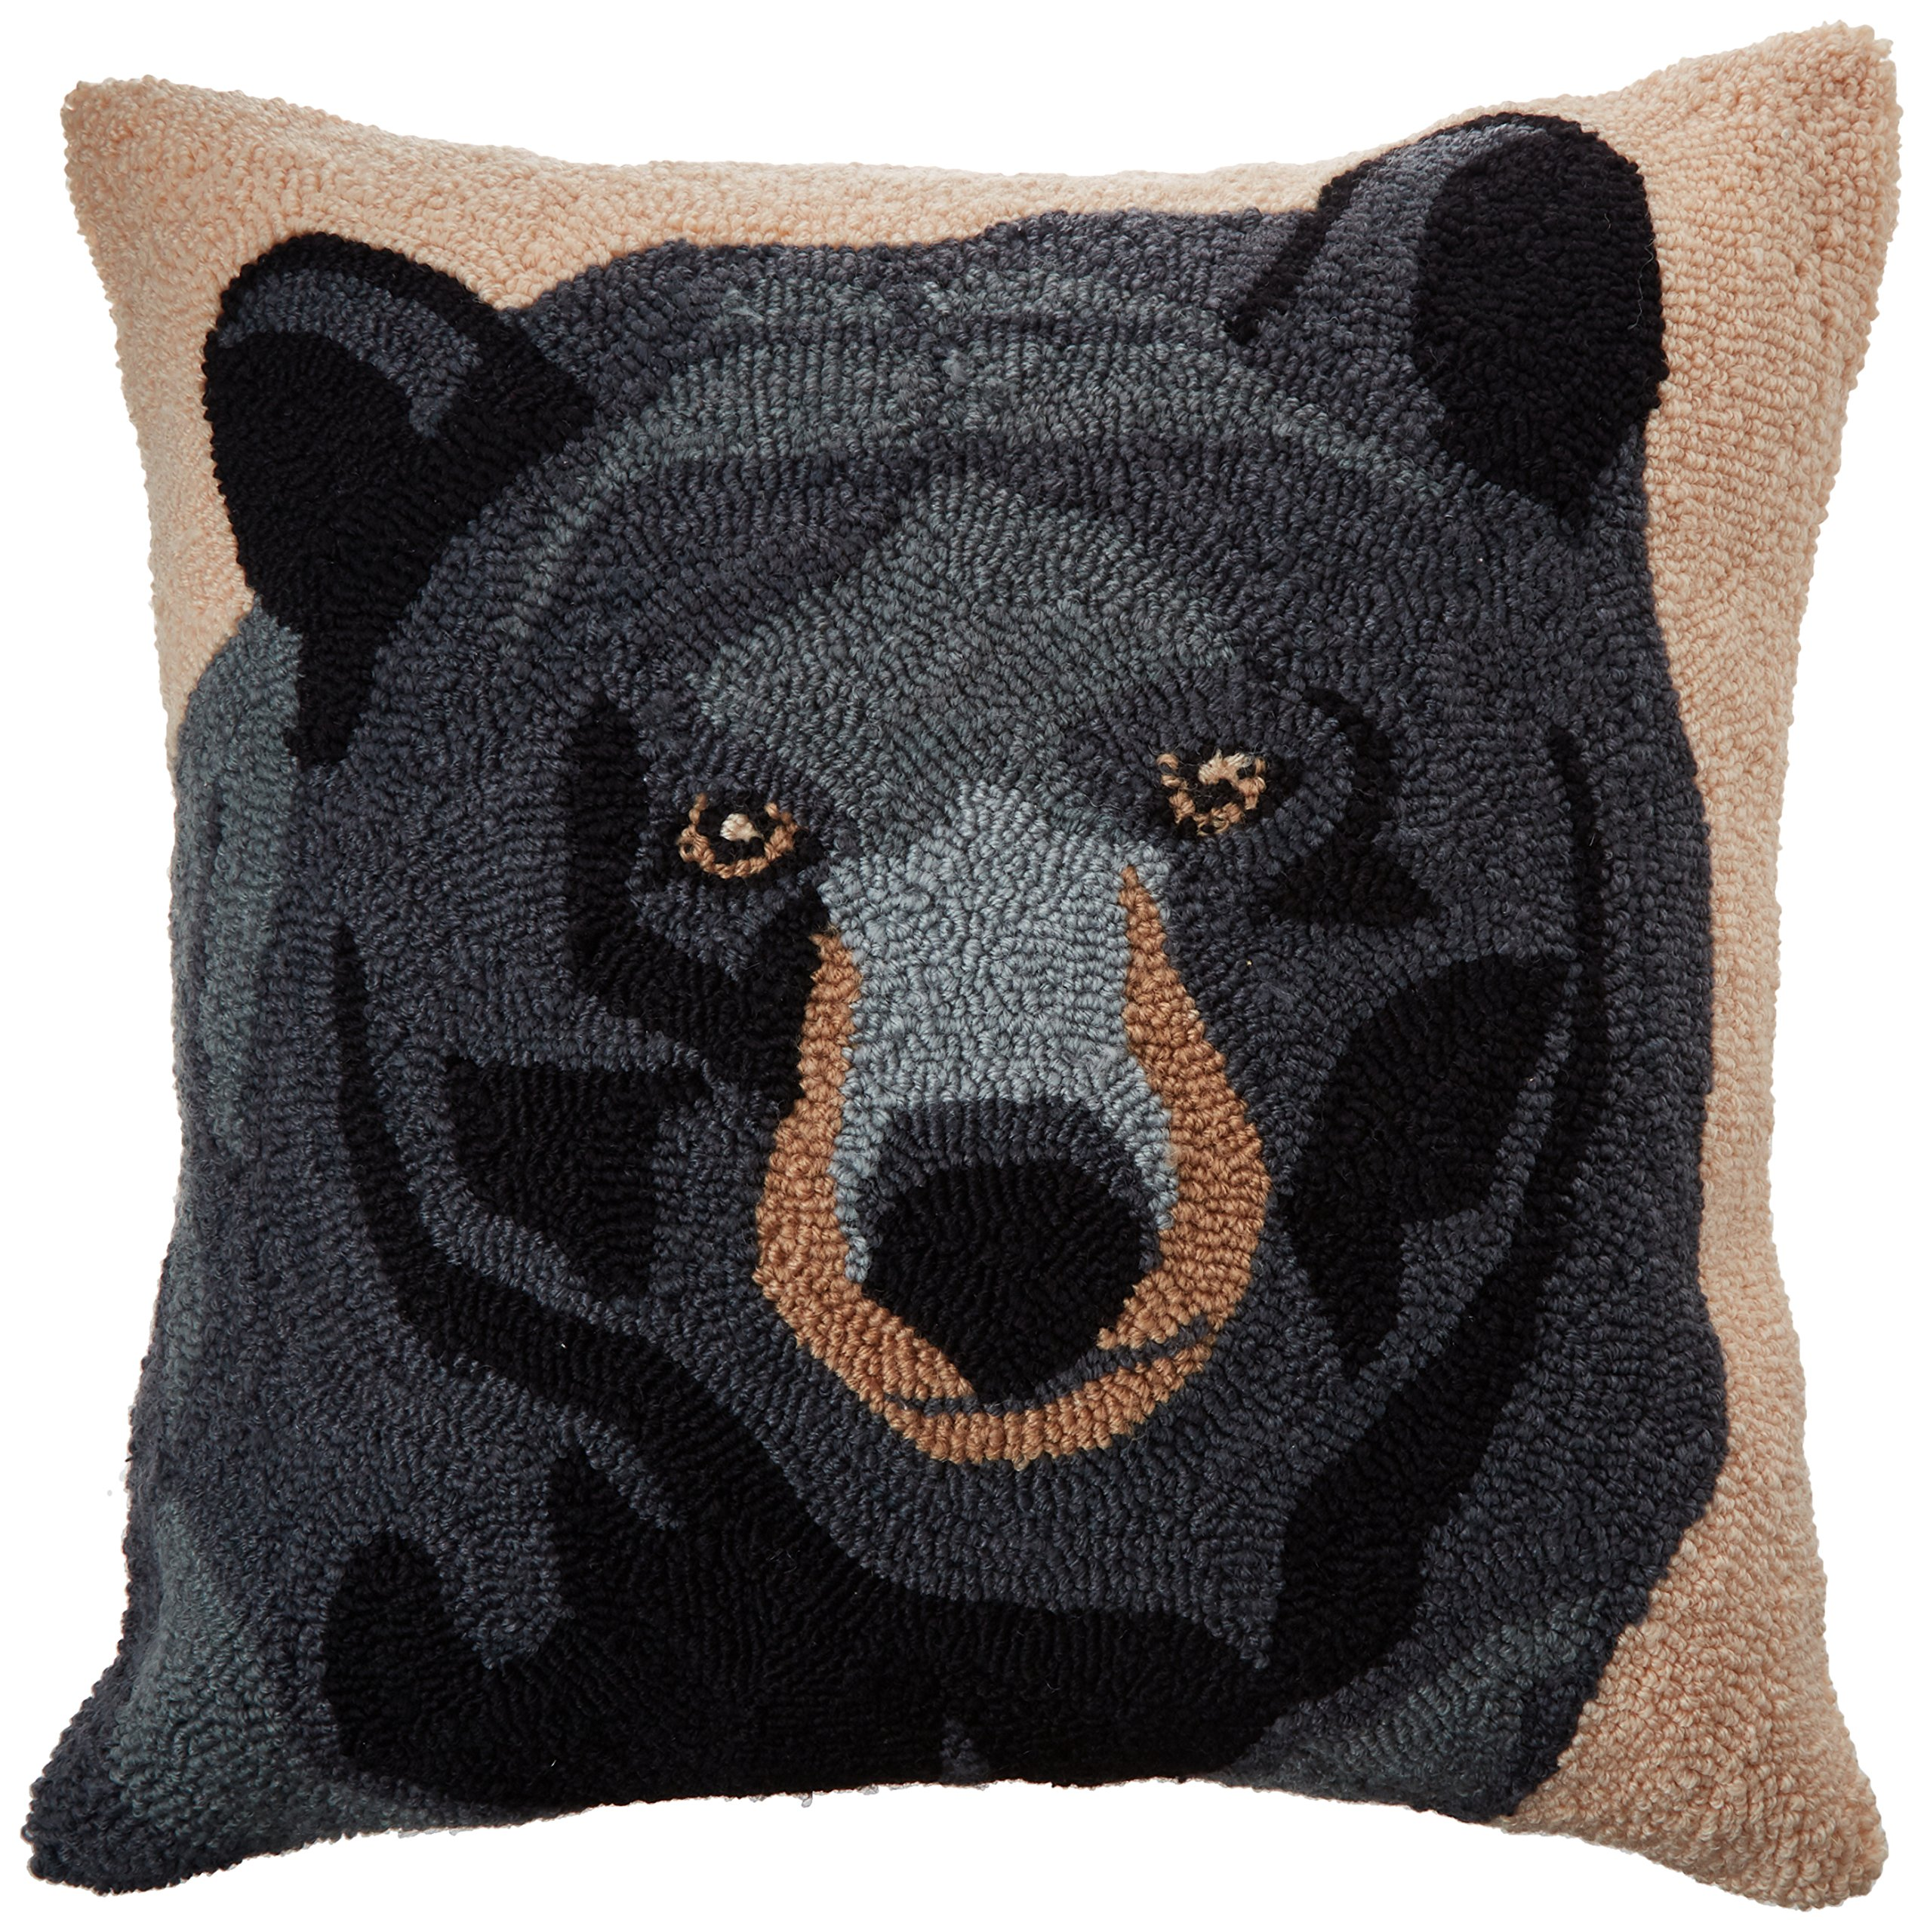 C&F Home in the Woods Bear Pillow, Black